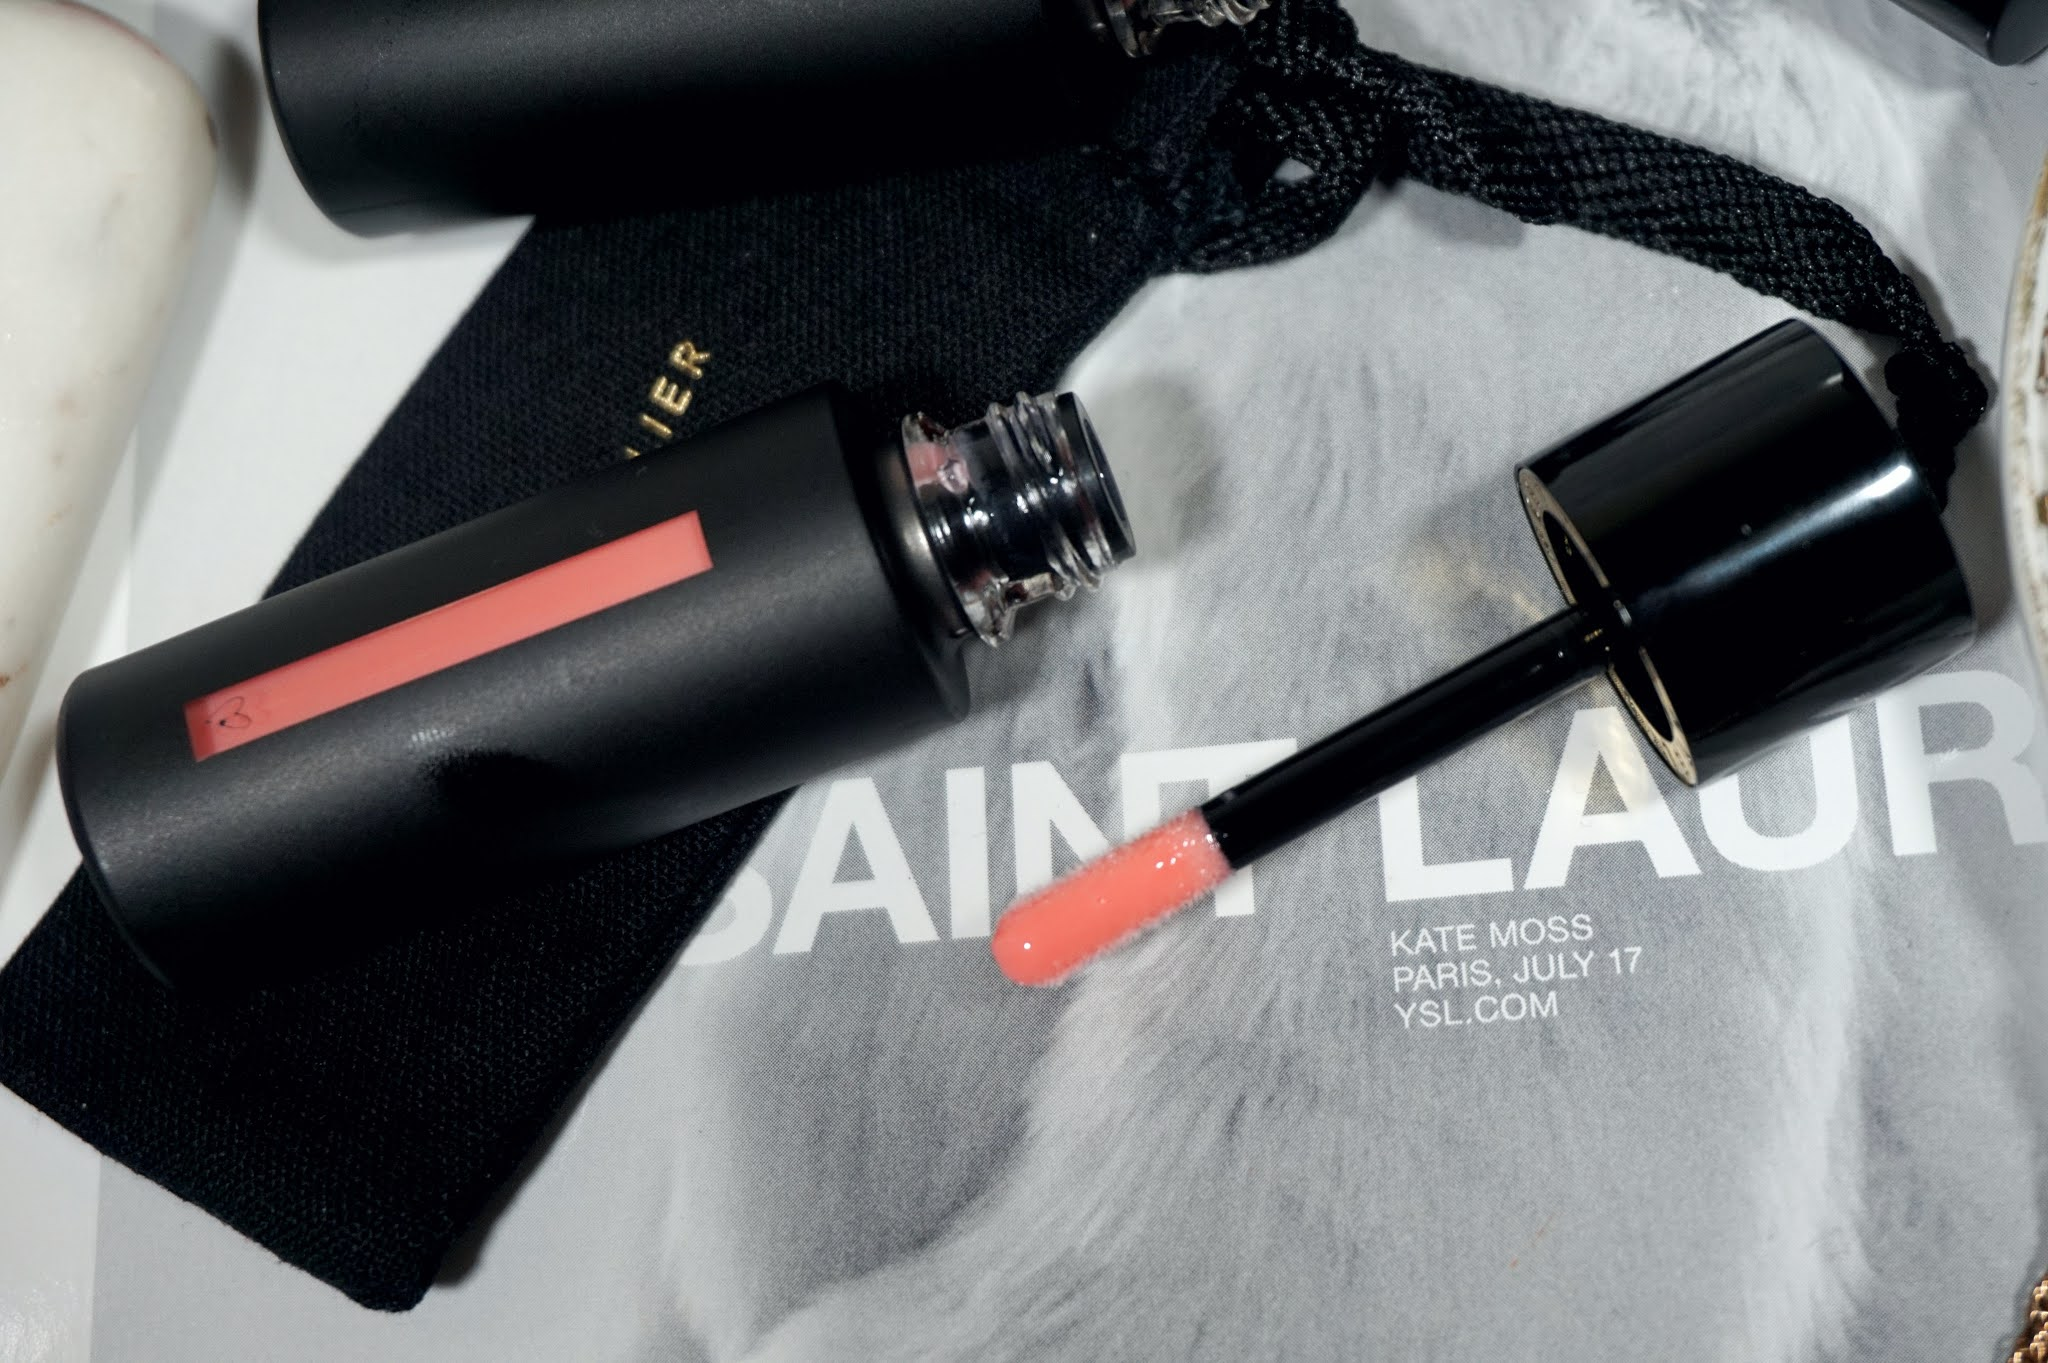 Westman Atelier Squeaky Clean Liquid Lip Balm Review and Swatches